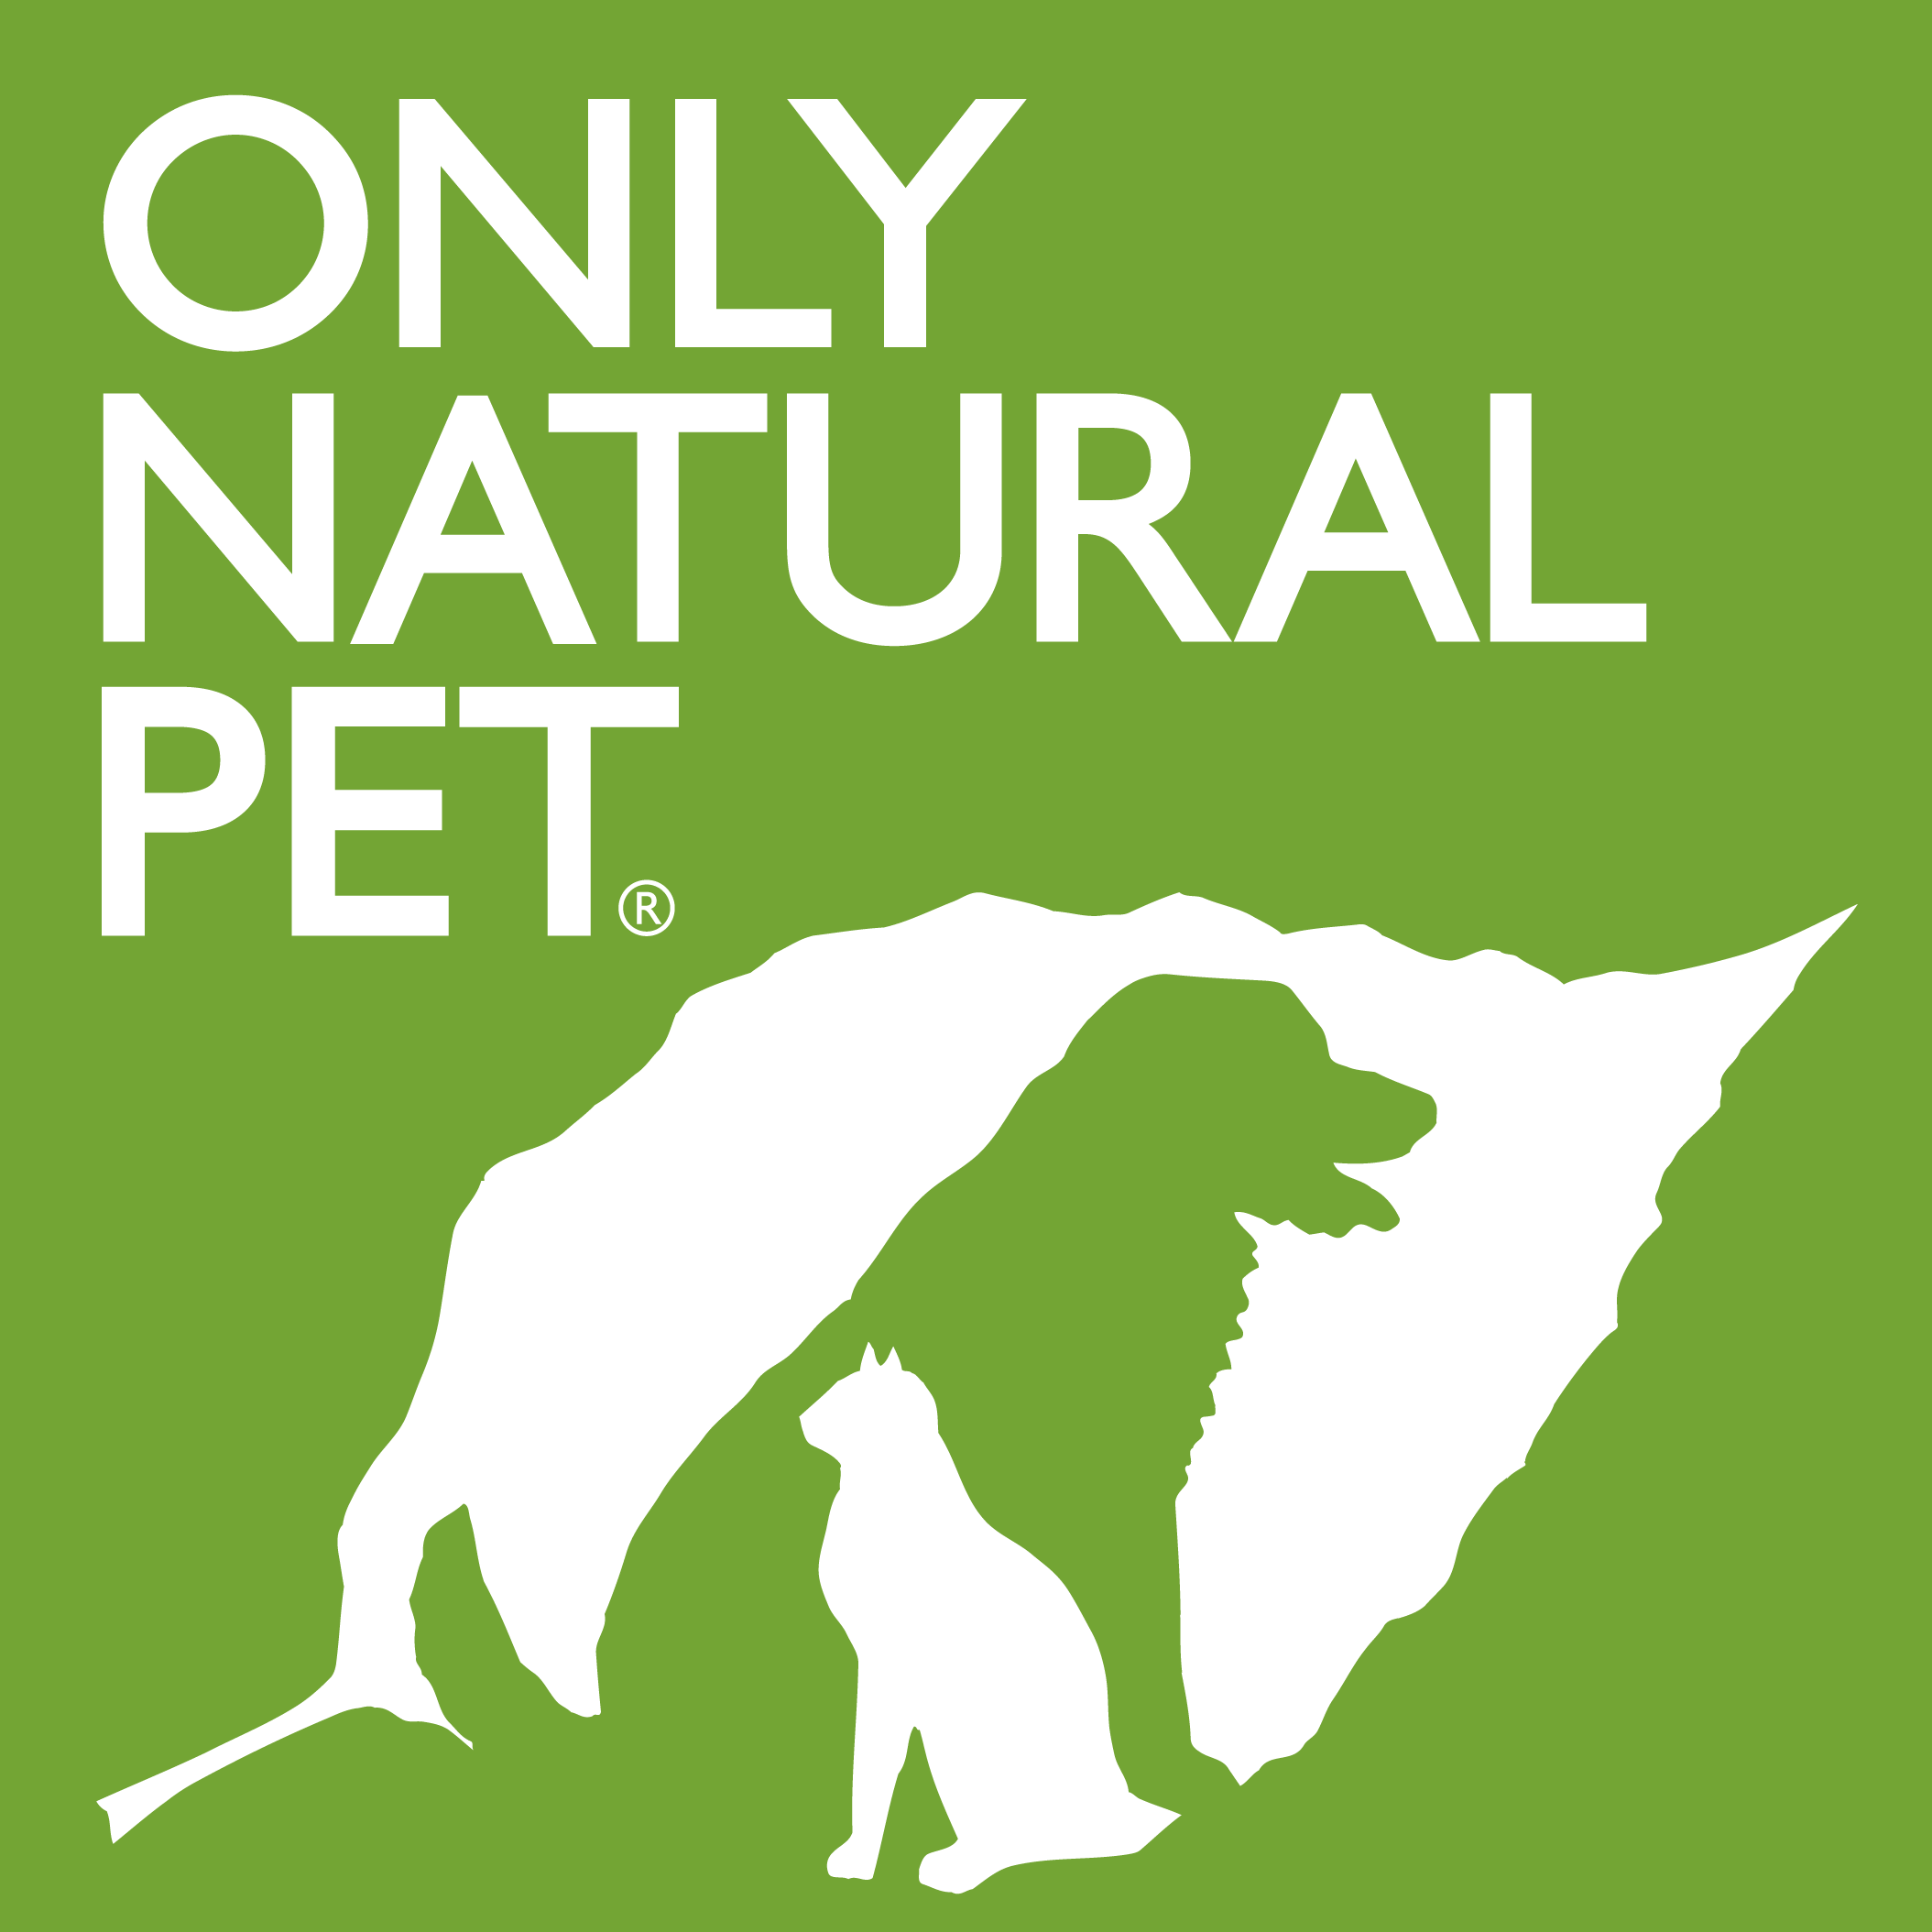 Only Natural Pet Store sells natural and organic dog and cat products with a holistic approach to animal care. Products include food, supplements, grooming items, leashes and collars.